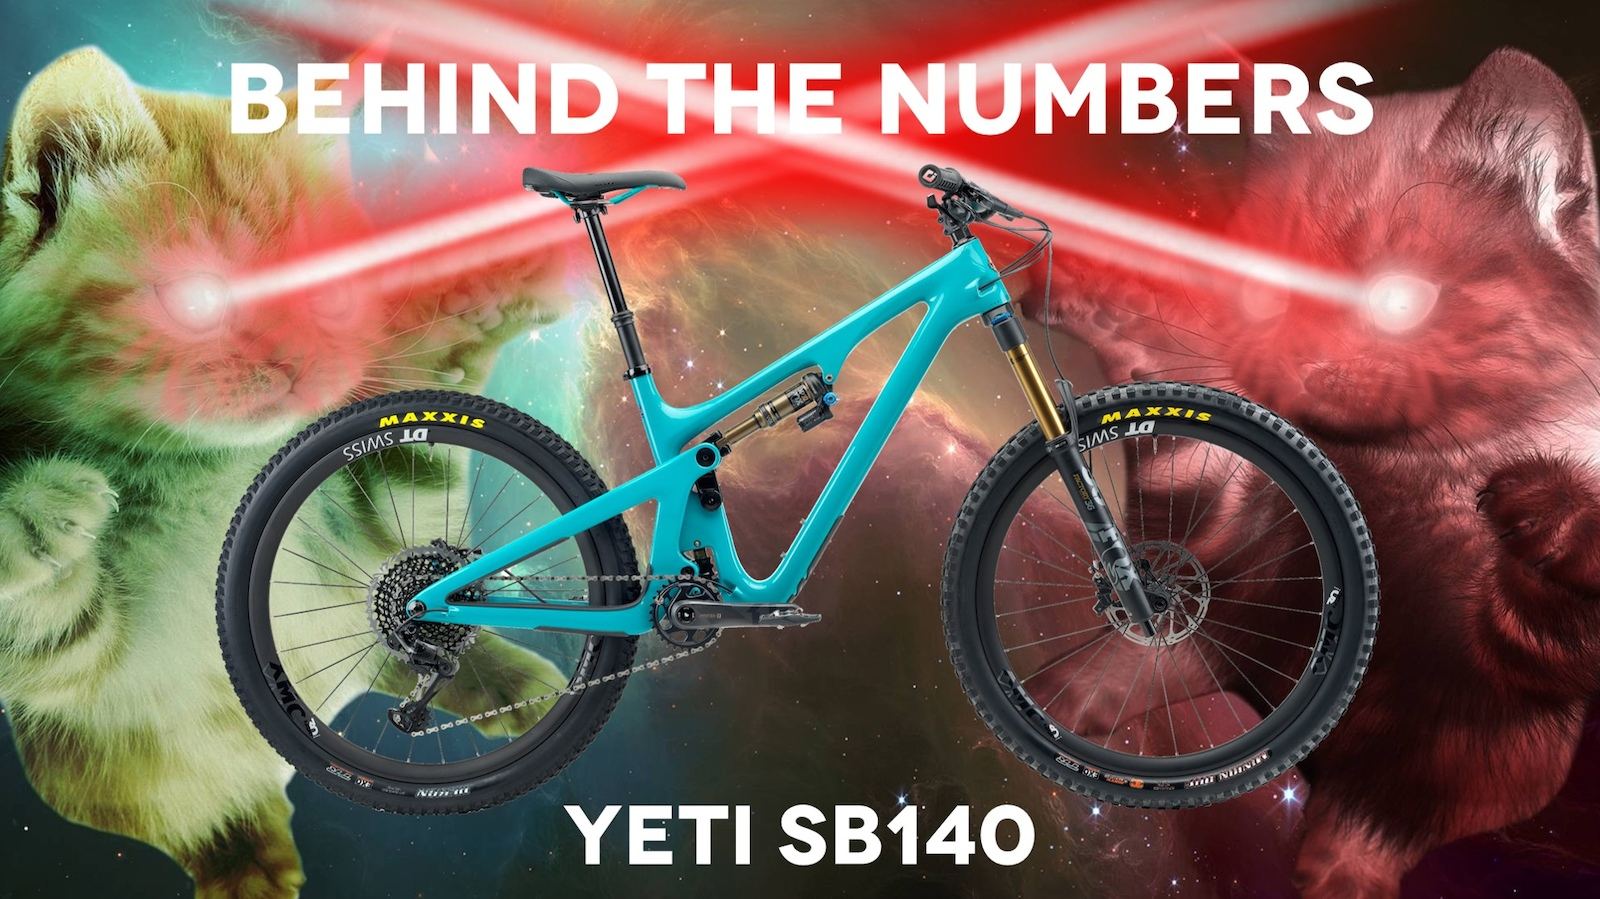 Behind the Numbers Yeti SB140 Title Image